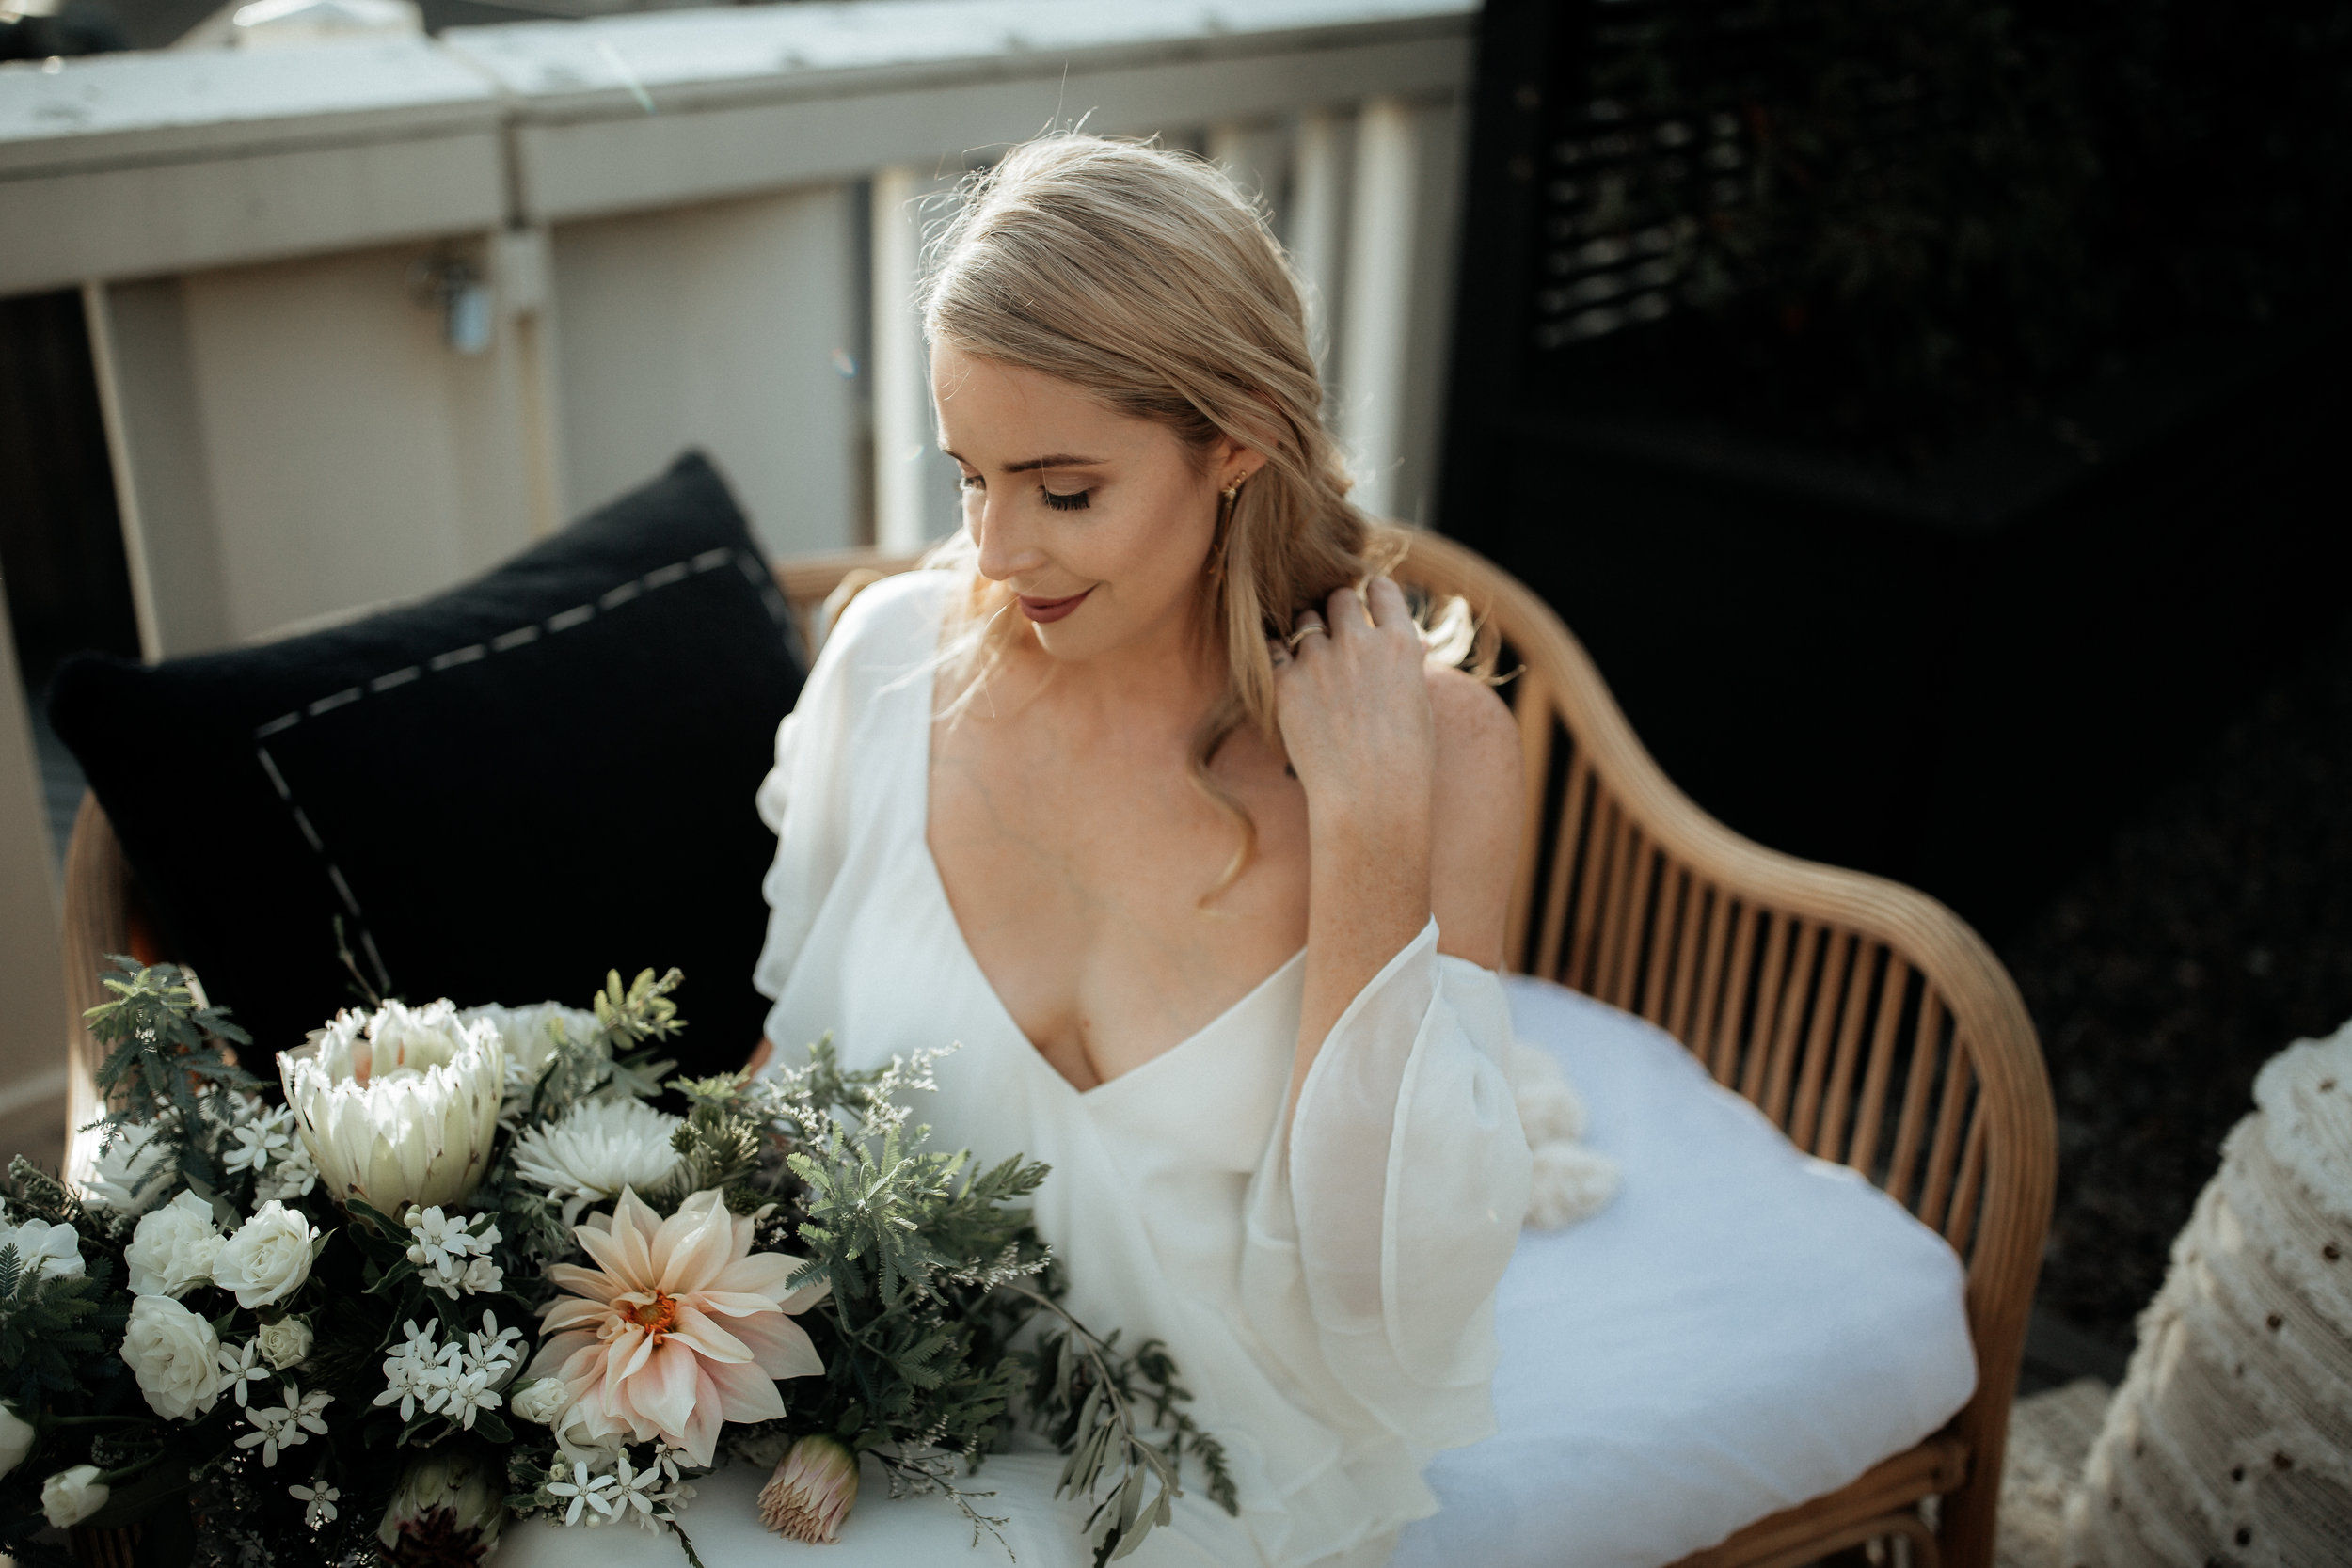 zandaphotography_Boheme_events_wedding_Auckland-70.jpg